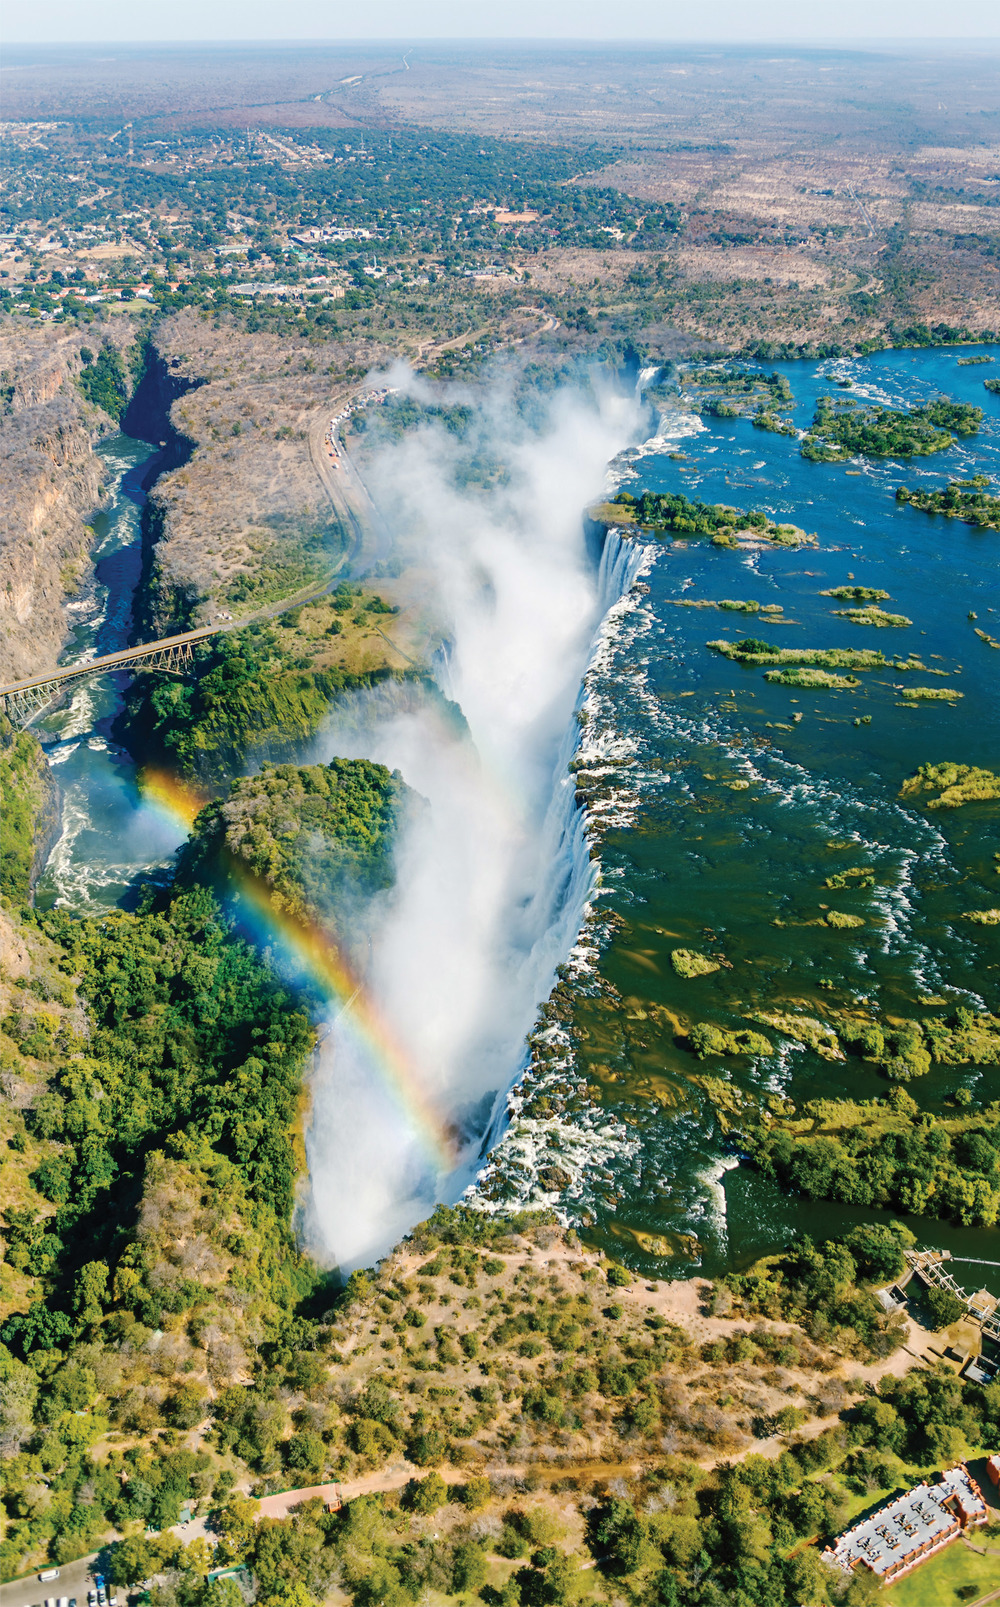 Left: Helicopter view of Victoria Falls, the largest curtain of water in the world.Vadim Petrakov / Shutterstock.com